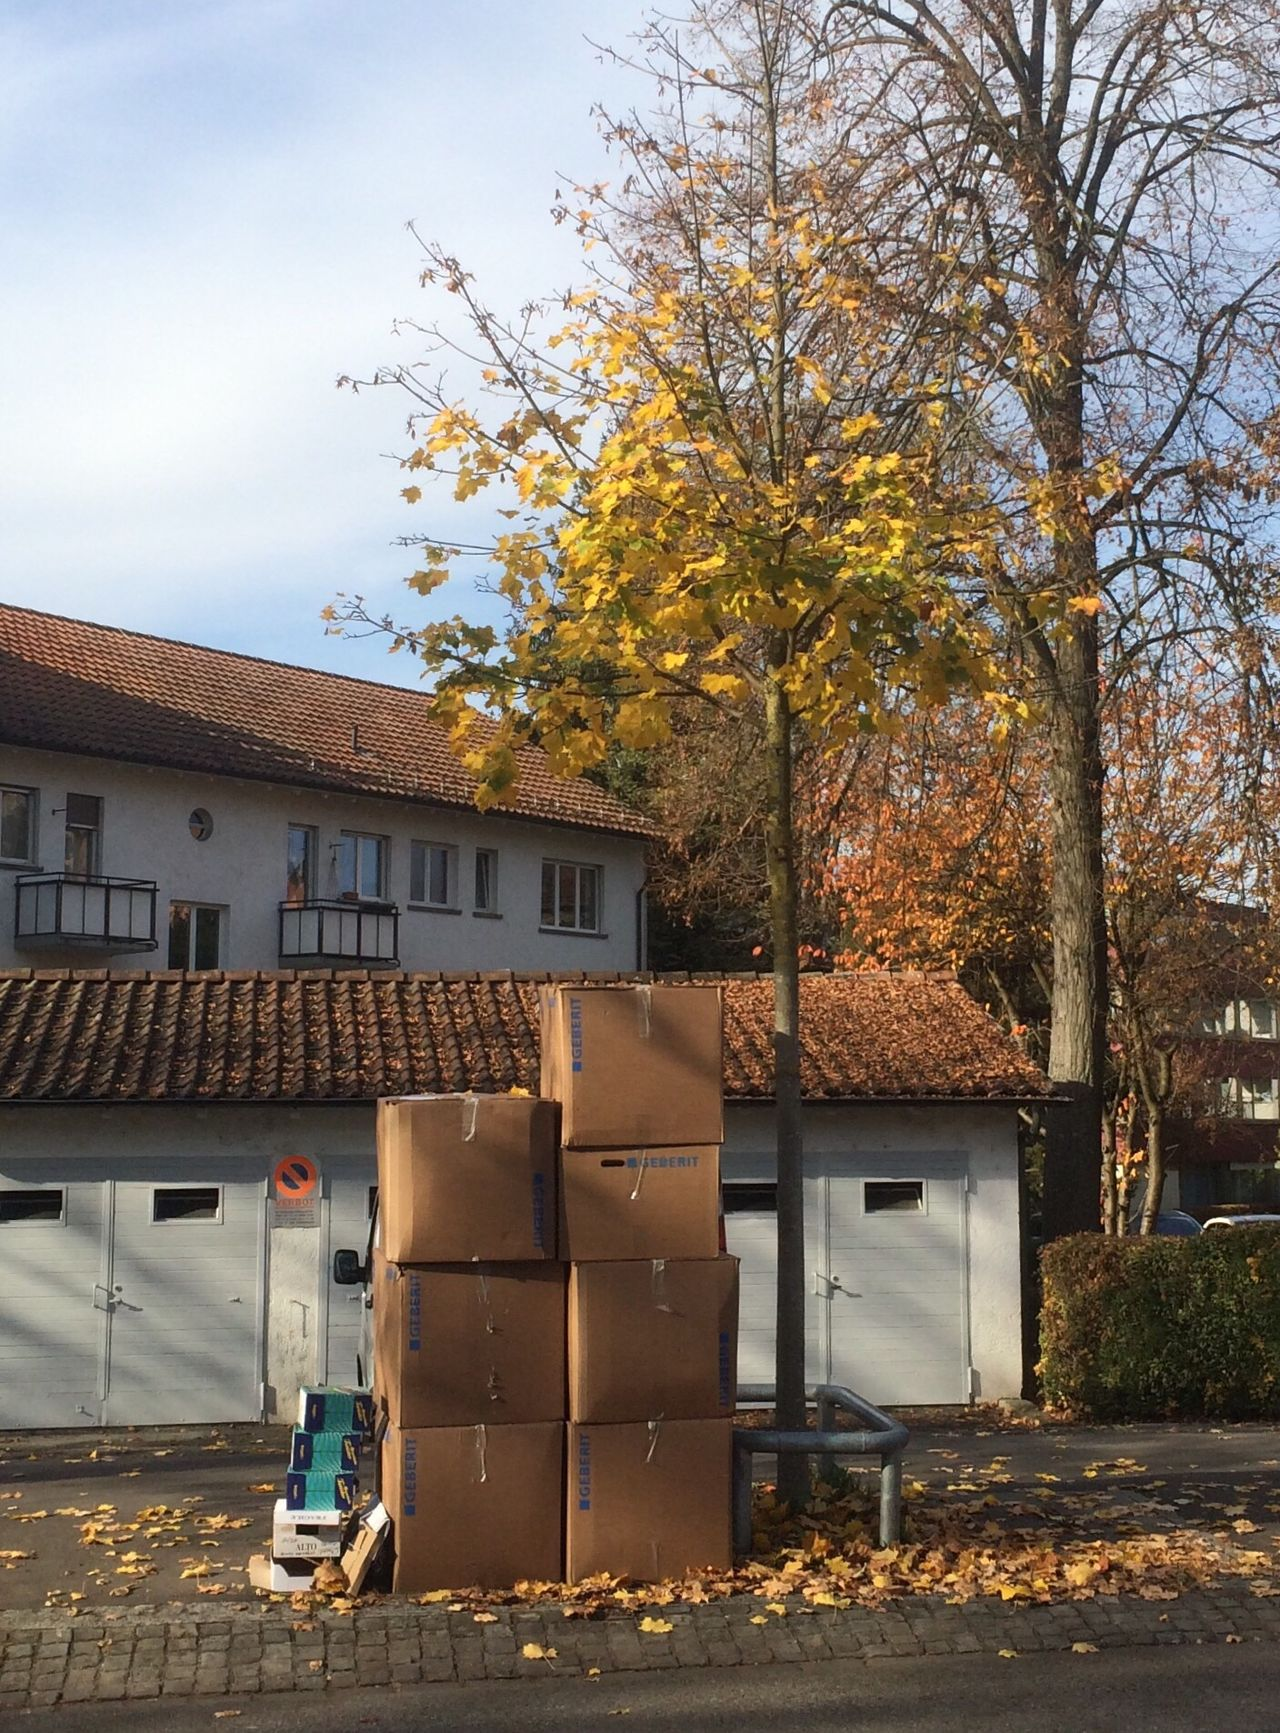 Tree Cardboard Boxes Autumn Building Exterior Outdoors No People Day